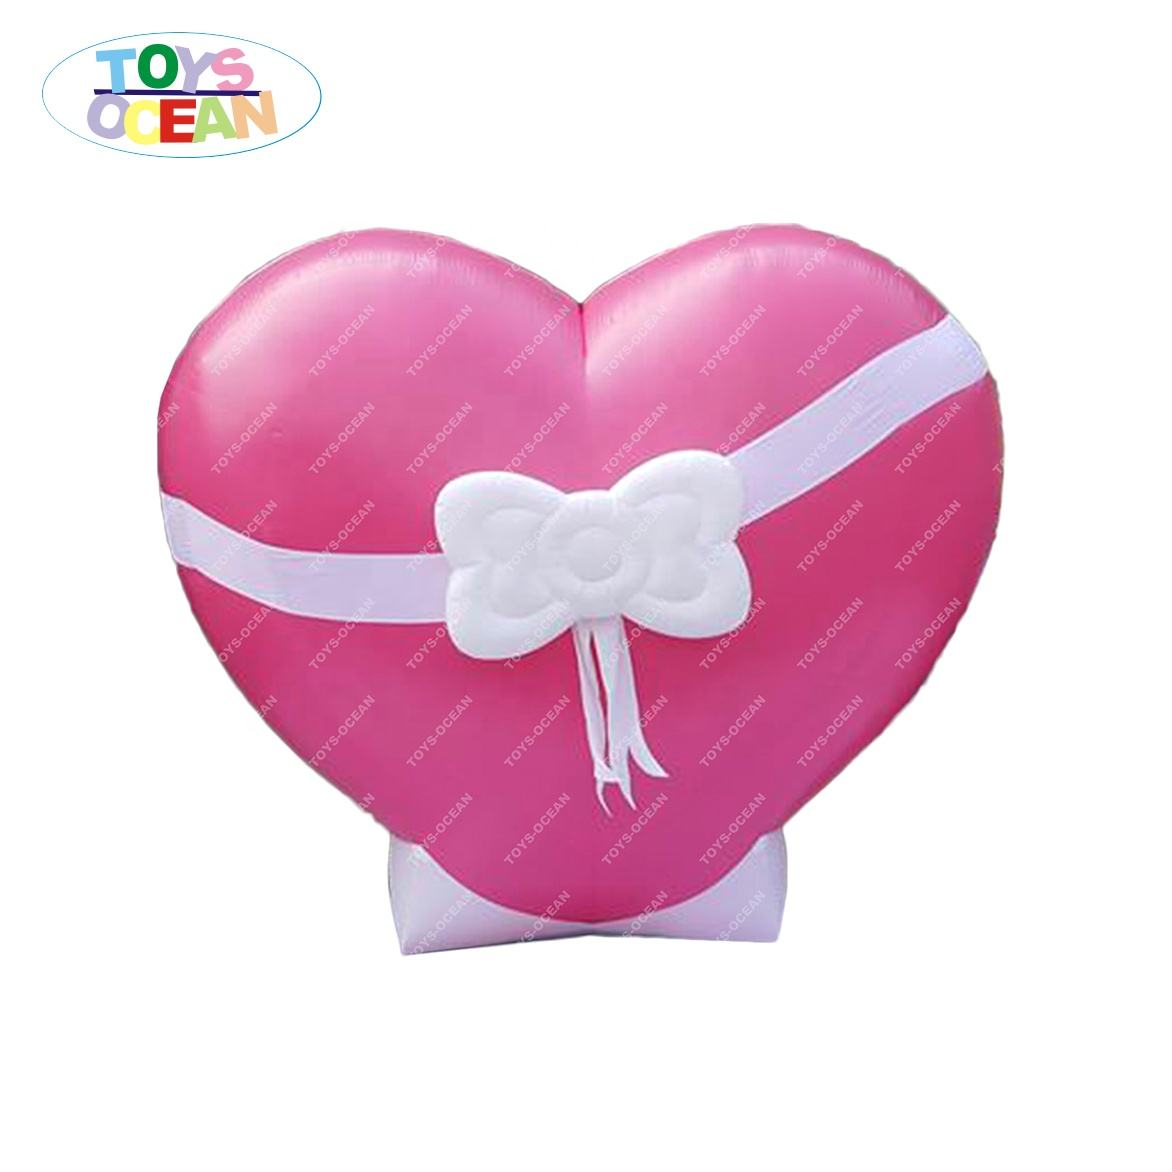 Large inflatable pink heart used for partner's anniversary surprise